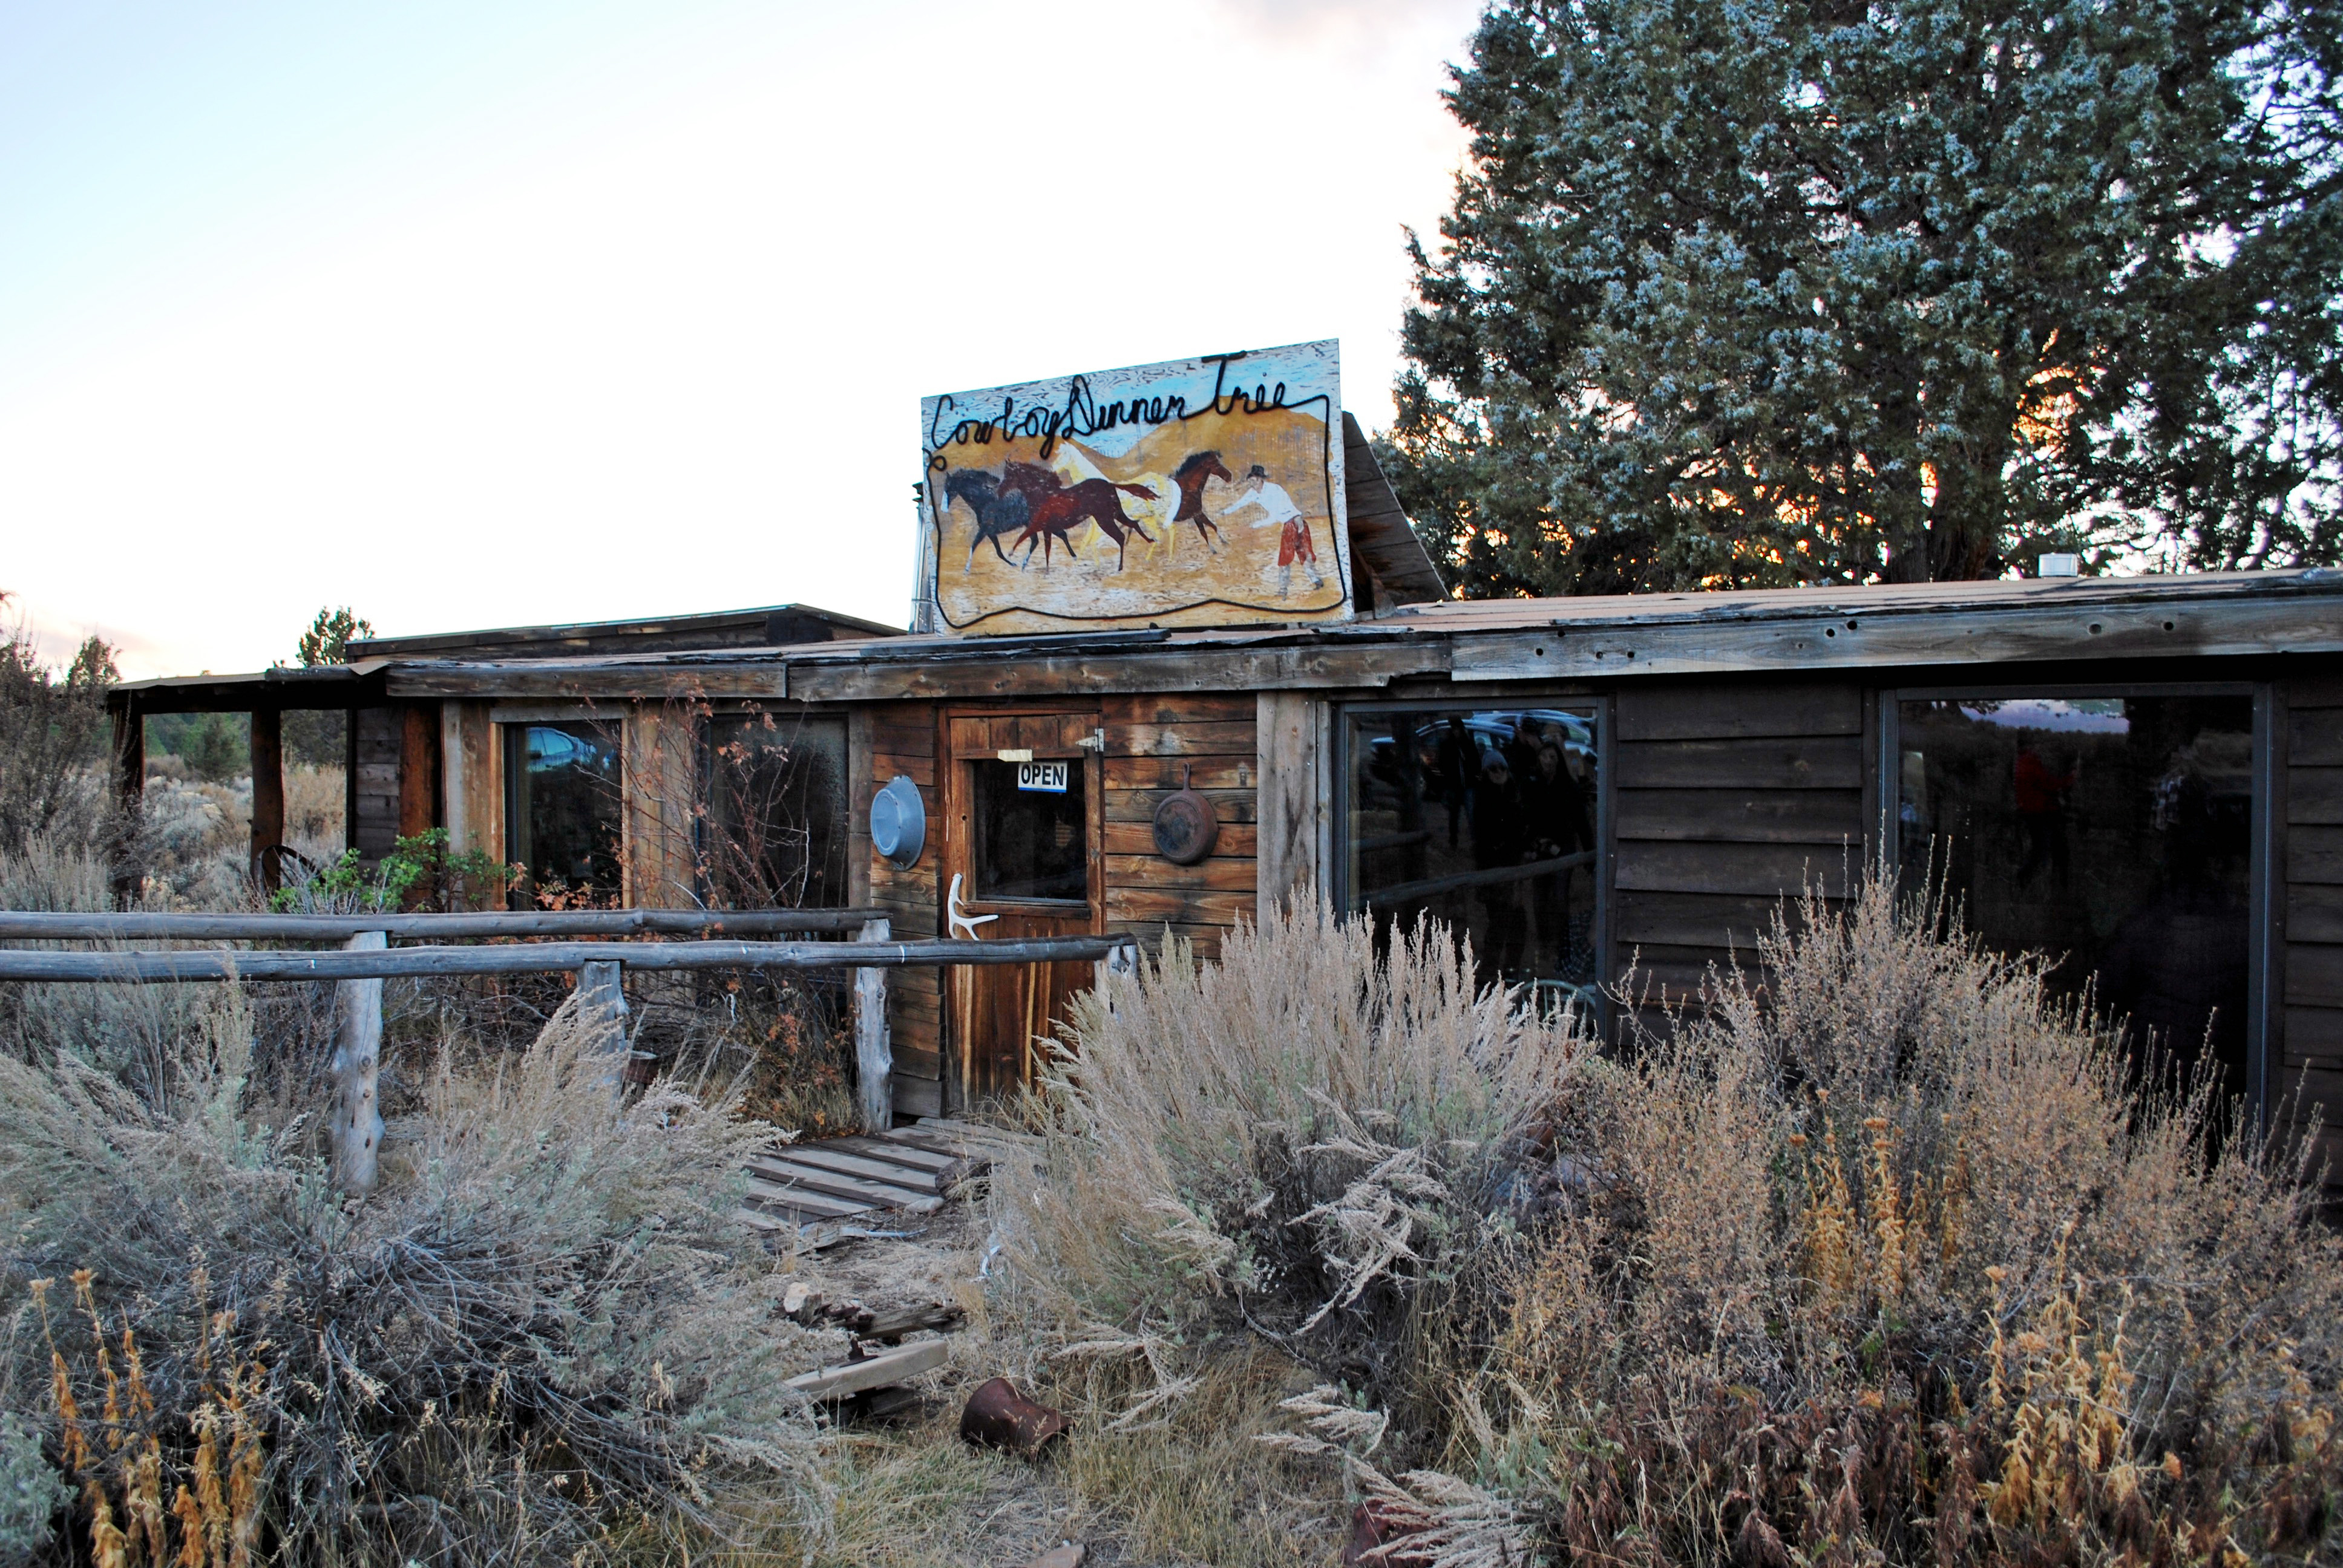 Eat Cowboy Steaks At This 19th Century Desert Shack